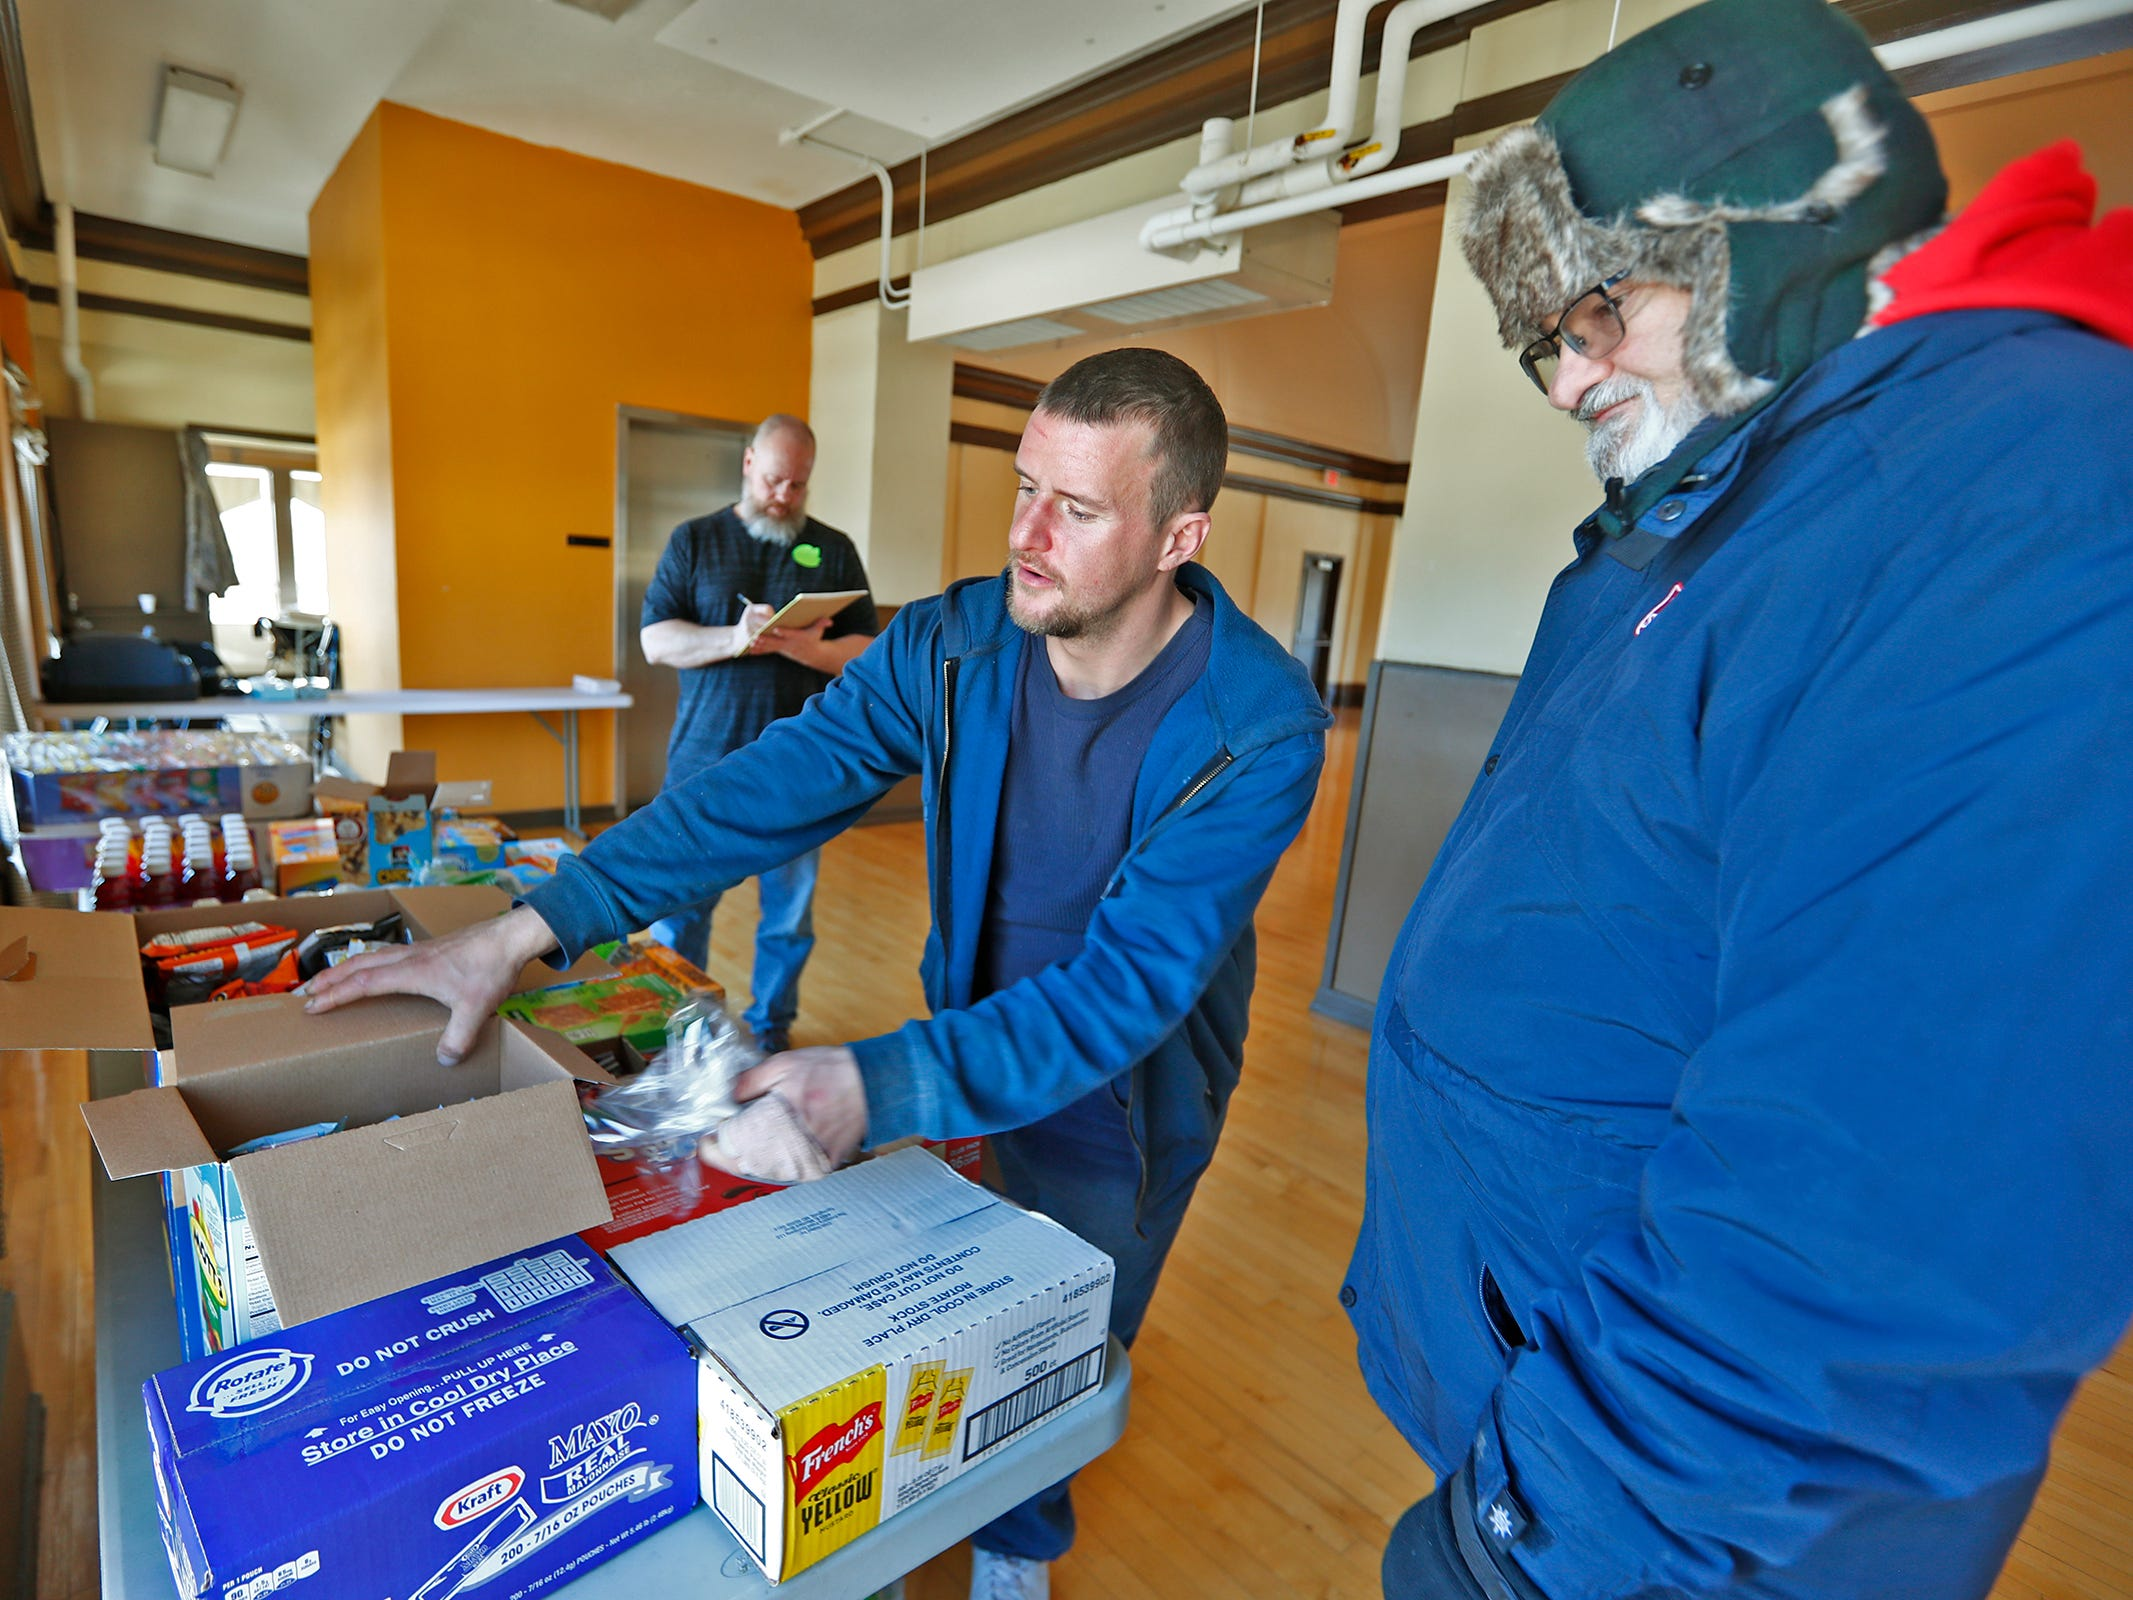 Salvation Army Major Keith Petrie, right, stands by as Chris Smith, center, grabs a snack at a Community Emergency Response Team warming center at the Municipal Gardens, 1831 Lafayette Rd., Wednesday, Jan. 30, 2019.  Petrie dropped off snacks from the Salvation Army. Wind chills made it feel like almost 30 below zero.